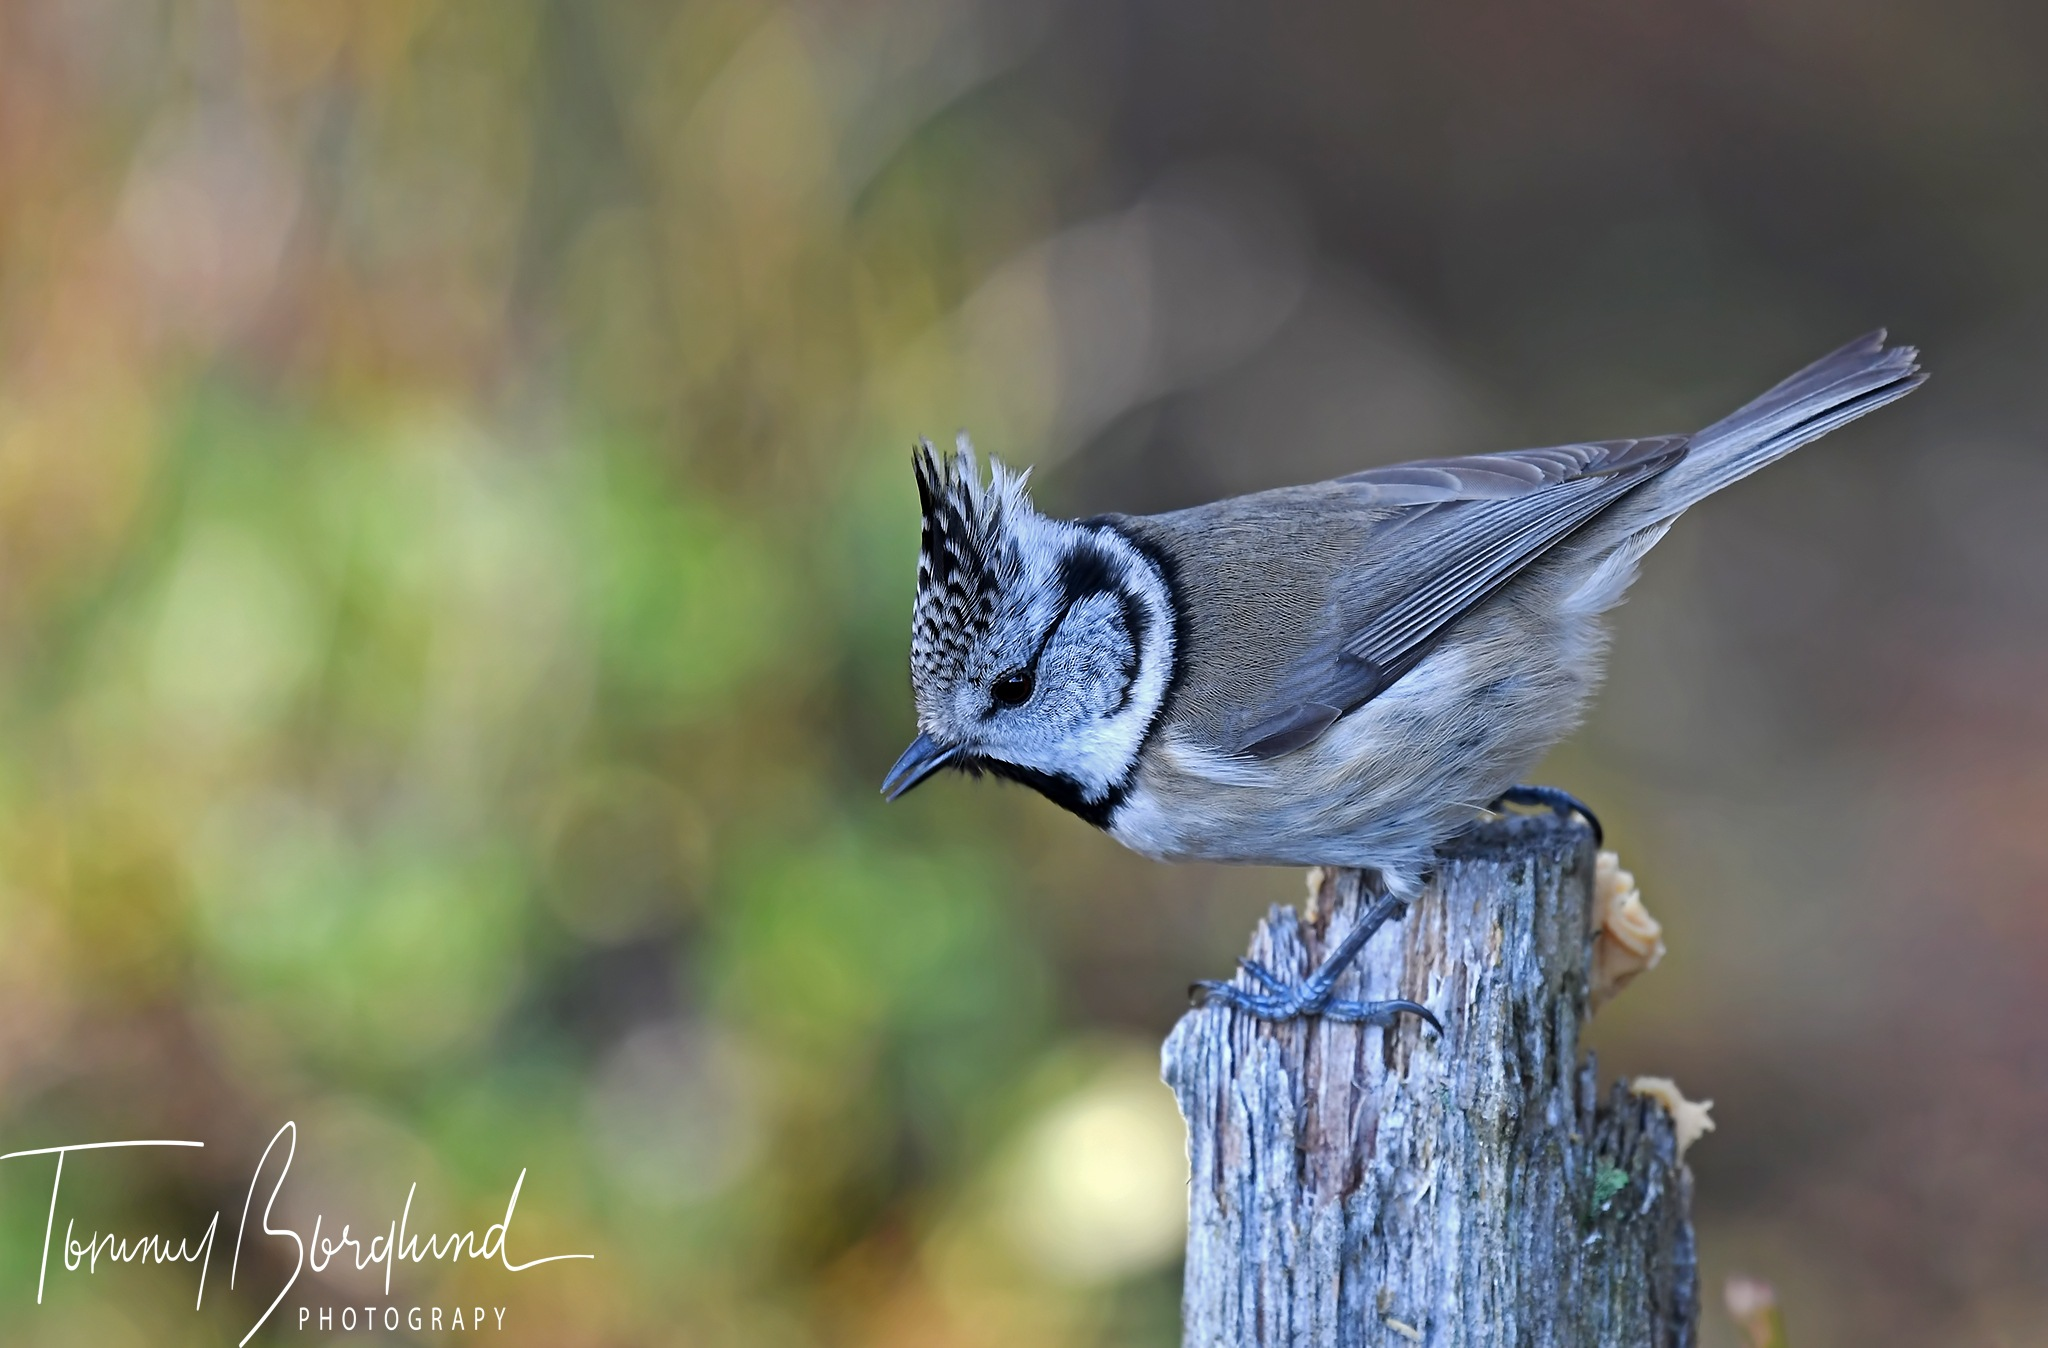 European crested tit by TommyBorglund